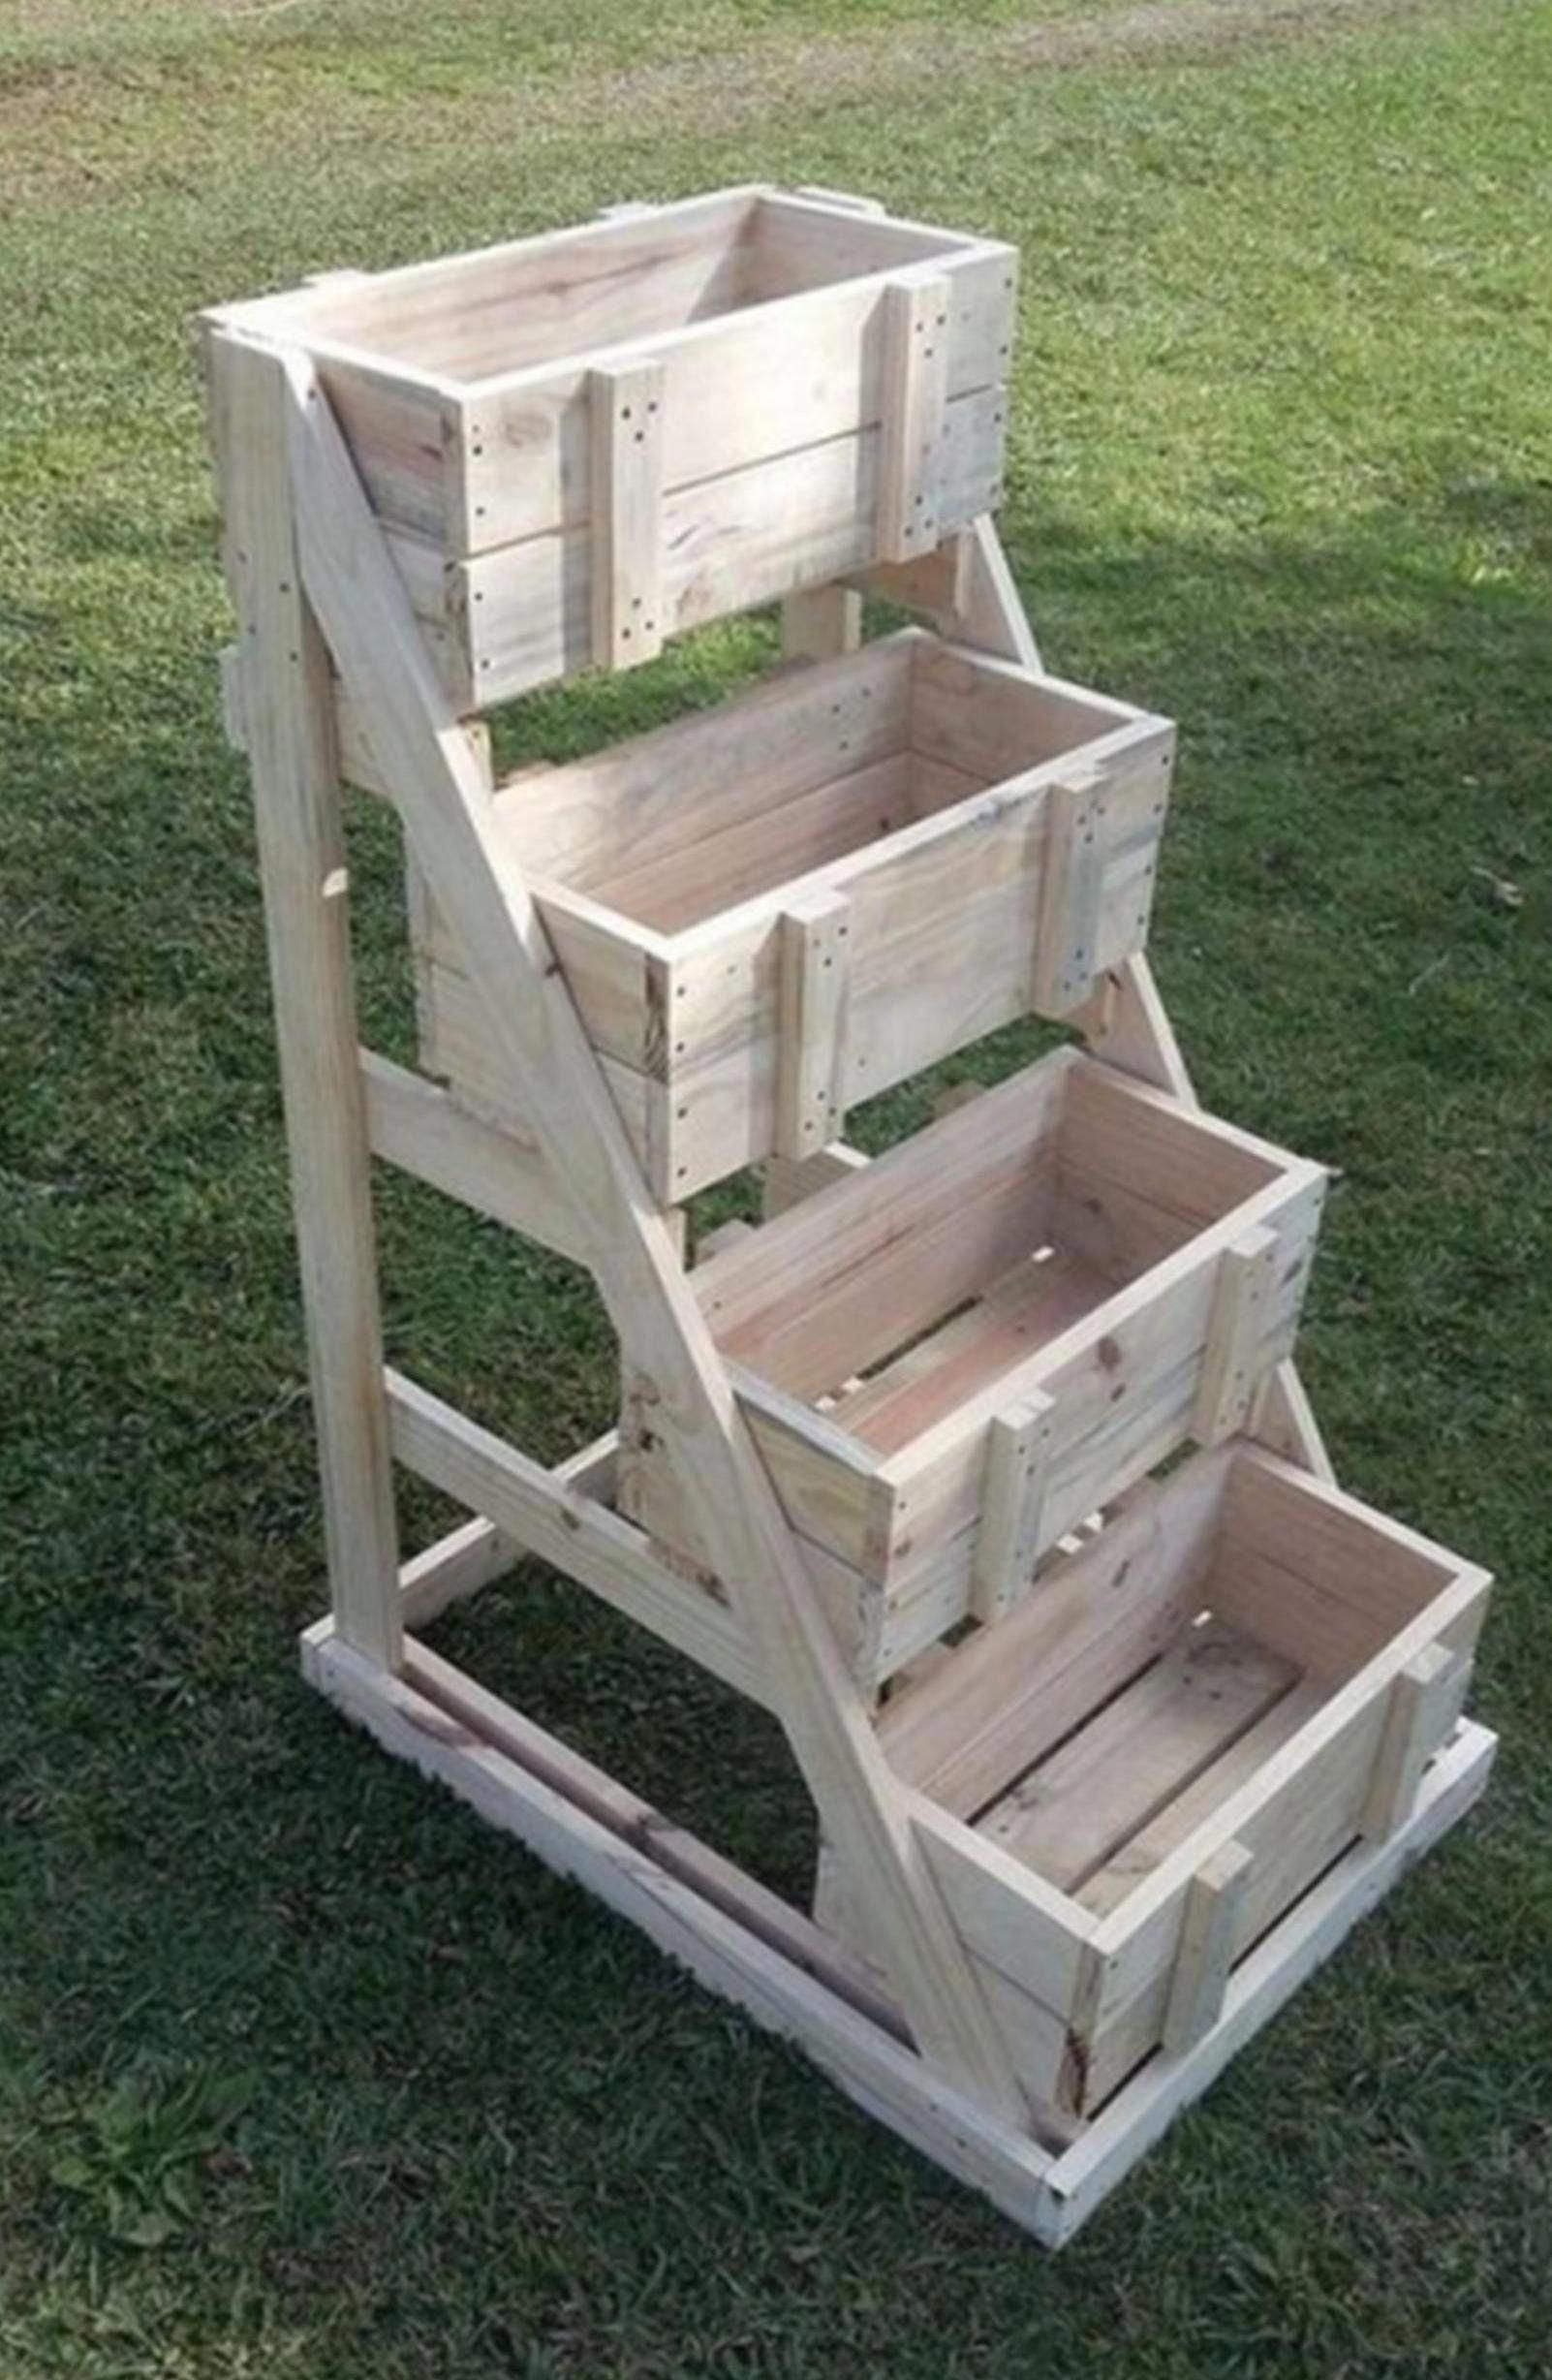 14+ Michaels crafts wood crates ideas in 2021